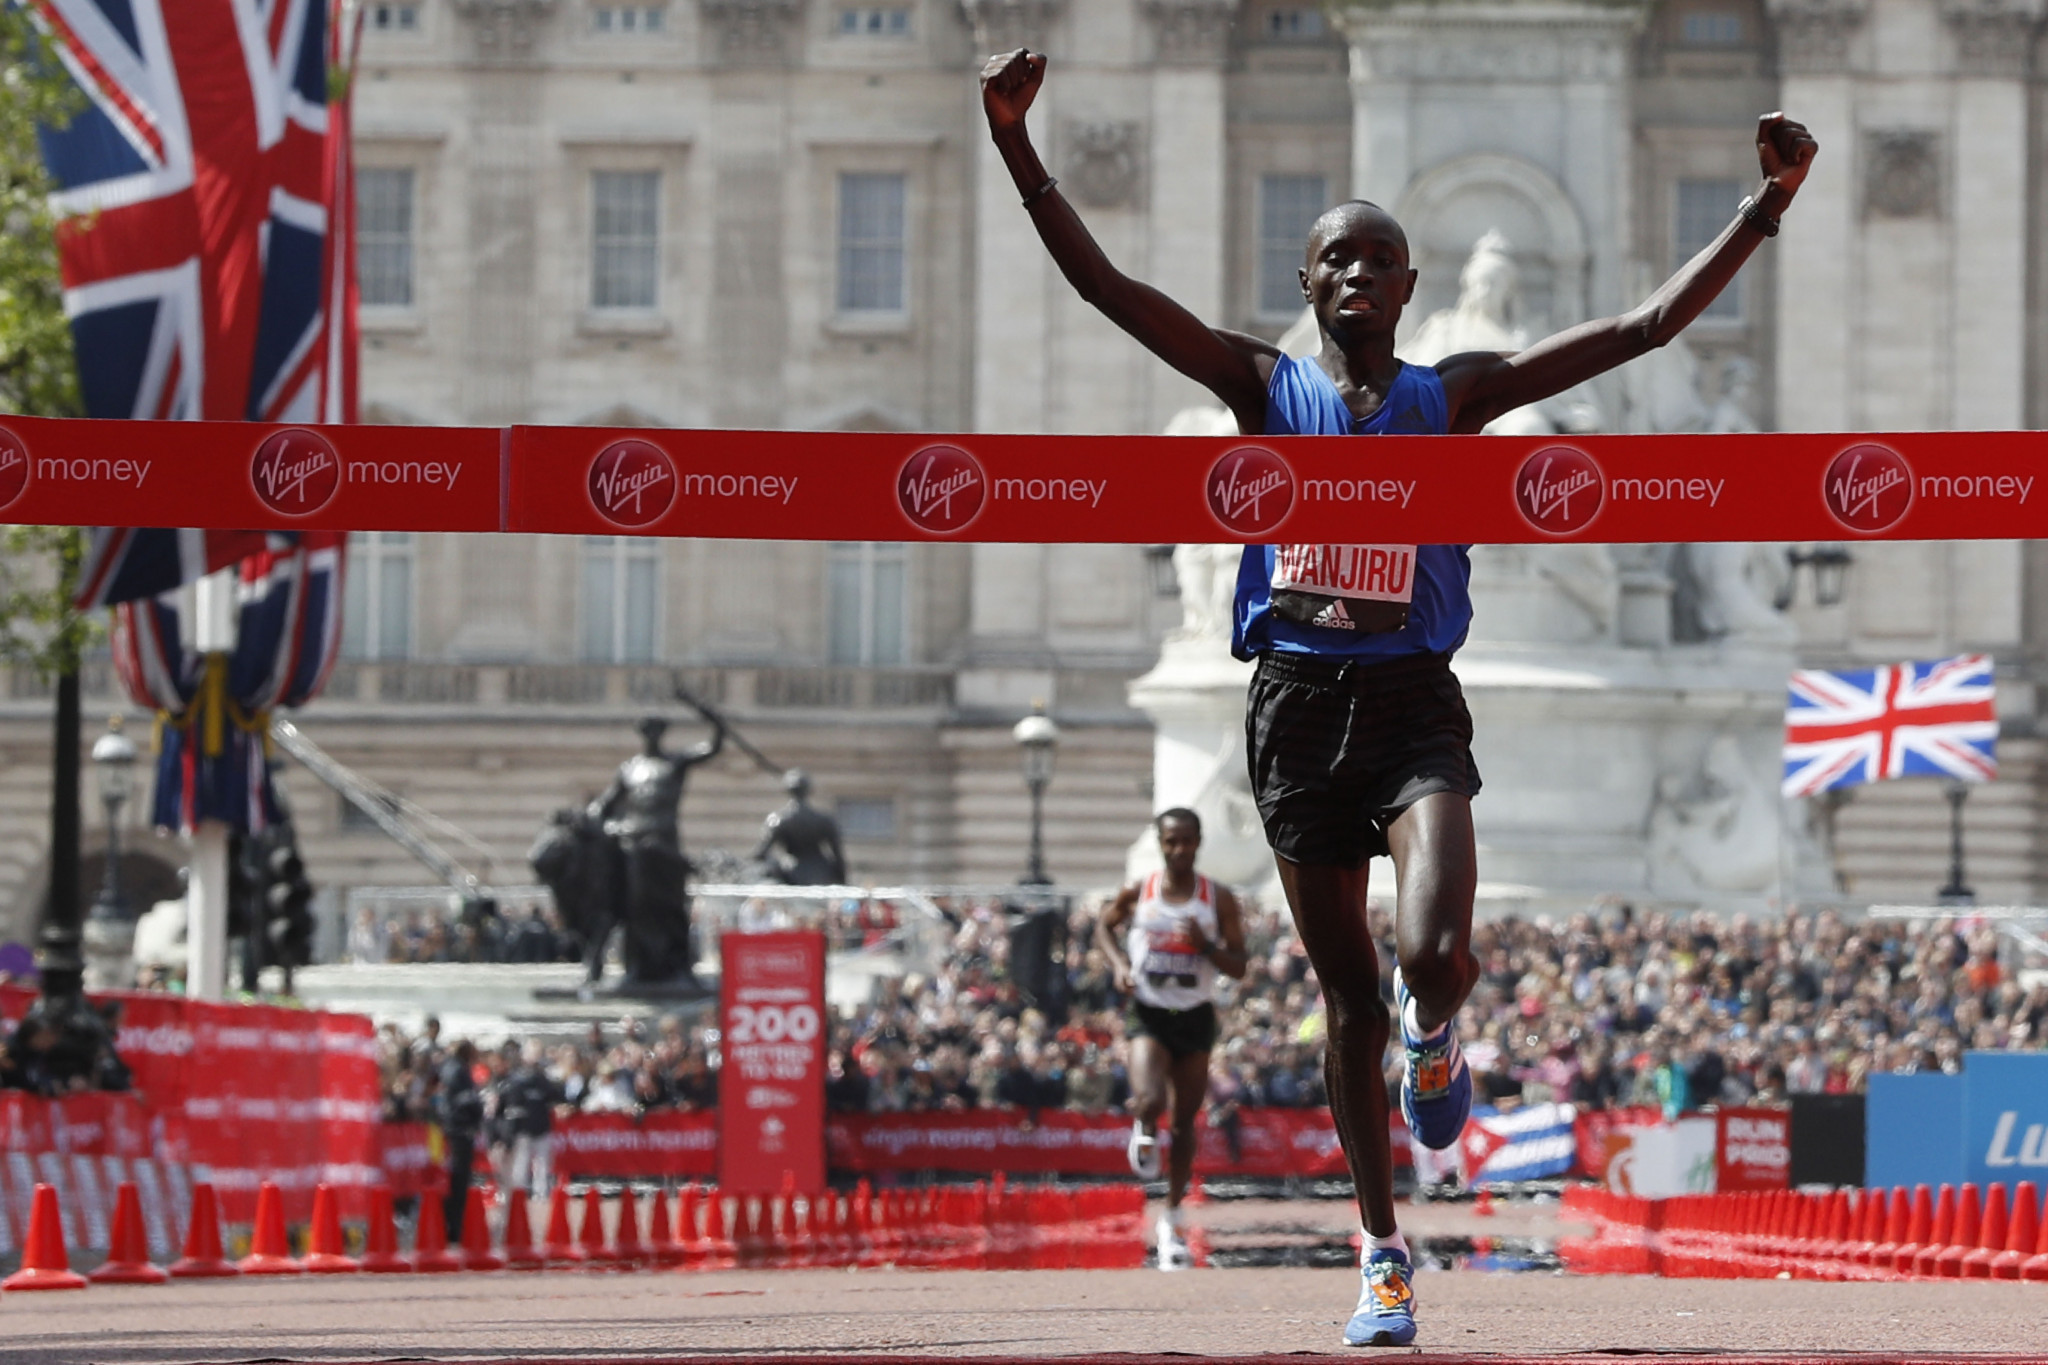 2017 London Marathon winner Daniel Wanjiru charged with doping violation